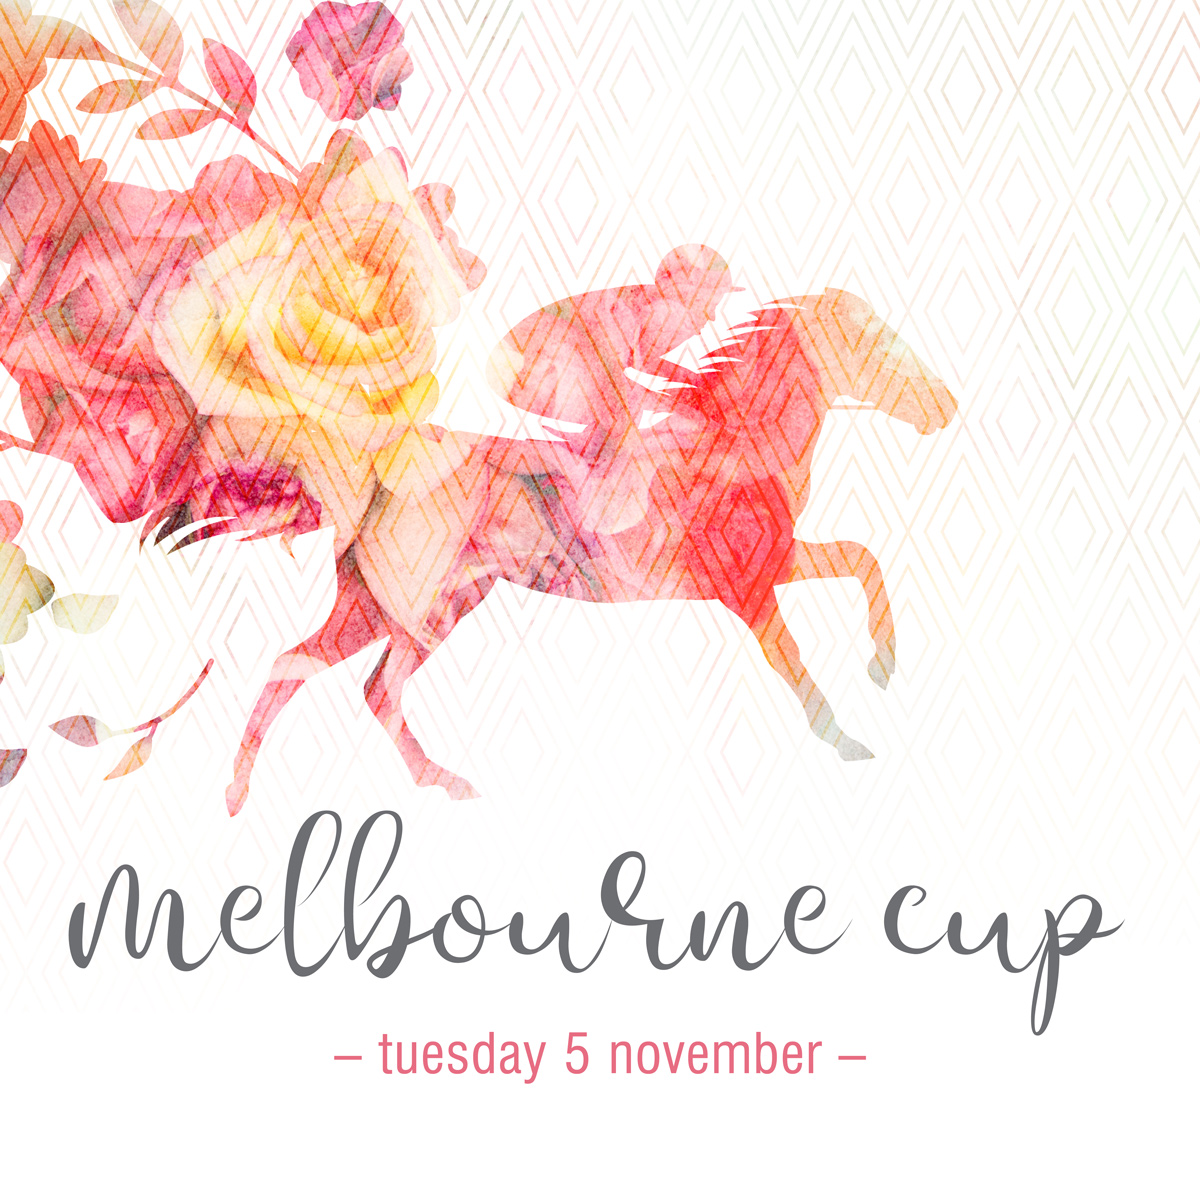 Melbourne Cup Gallery